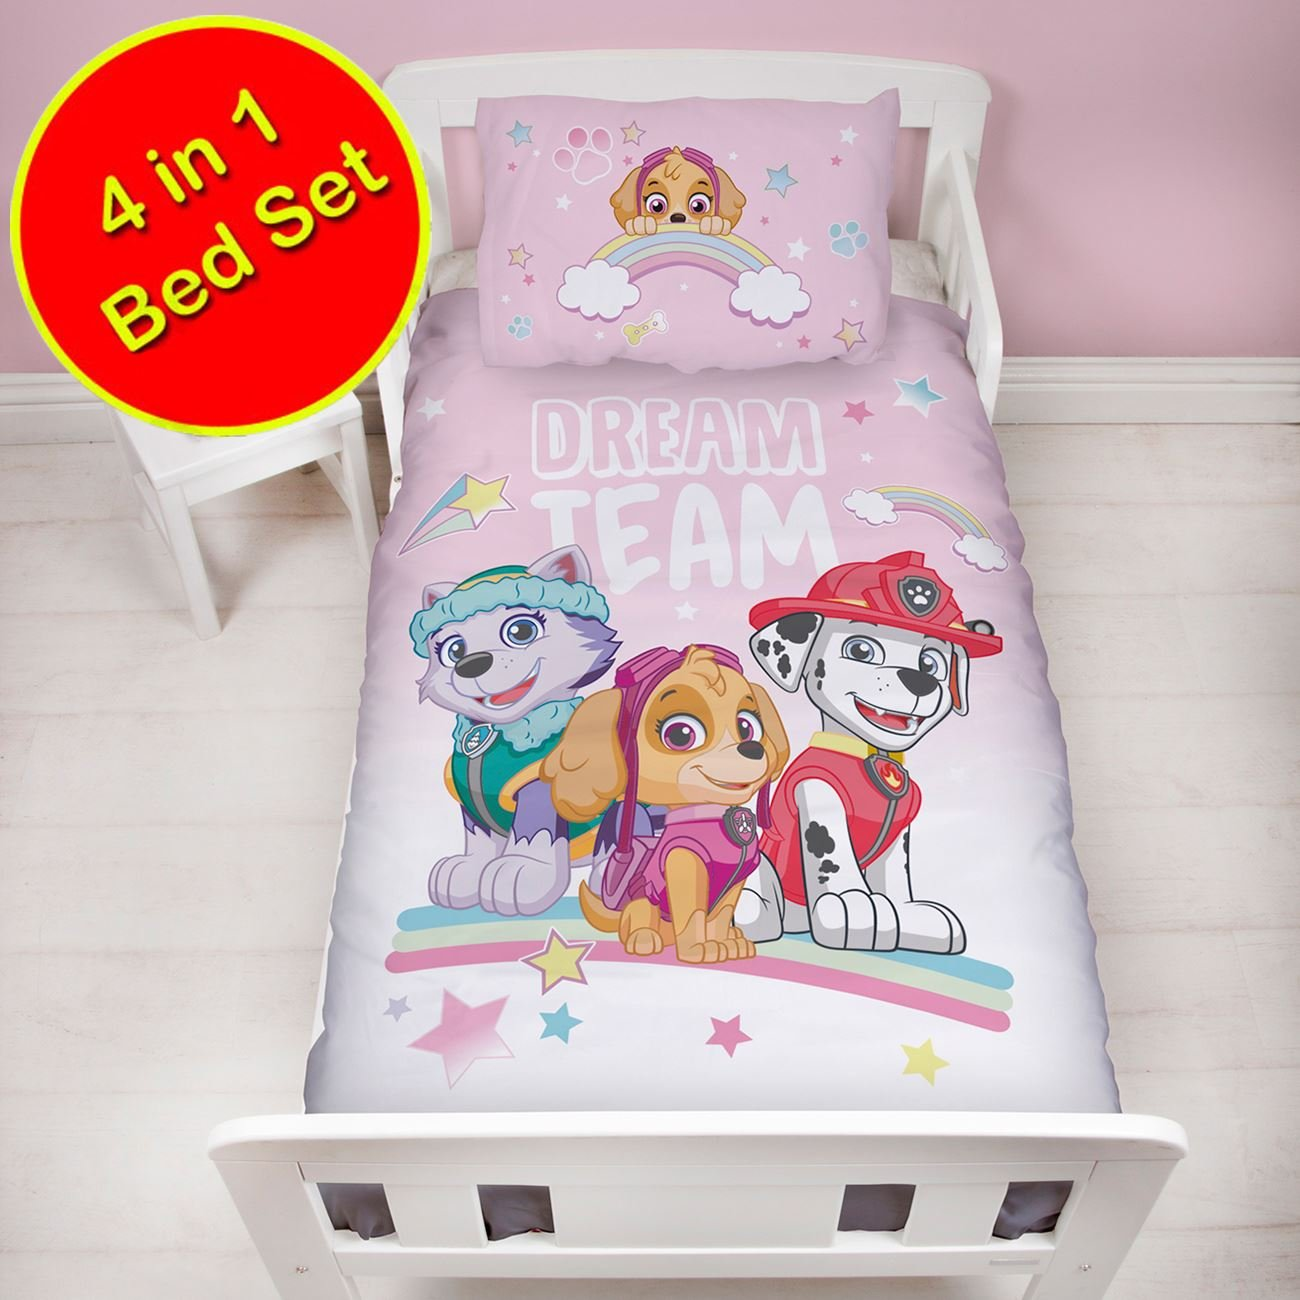 Paw Patrol Pastels 4 in 1 Junior Bedding Bundle Set (Duvet, Pillow and Covers) Character World